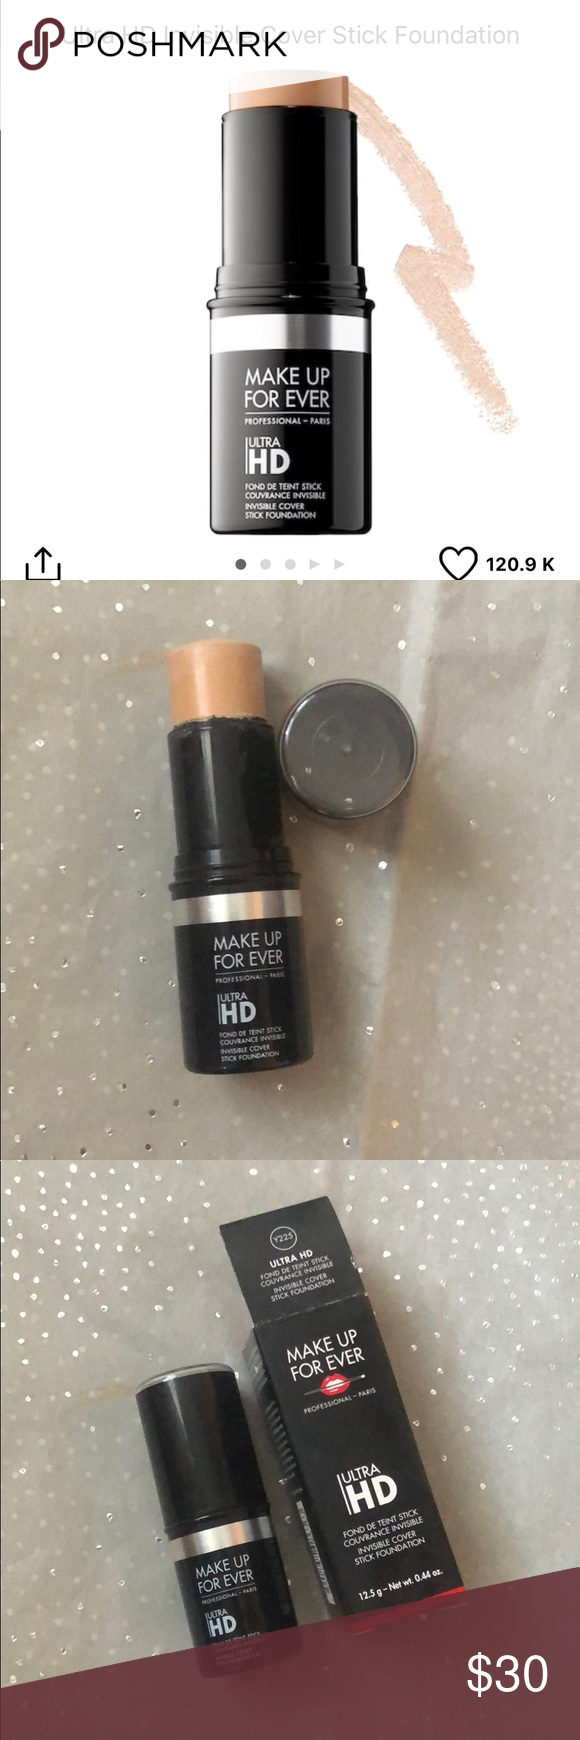 Makeup Forever Ultra HD stick in shade Y225 Makeup